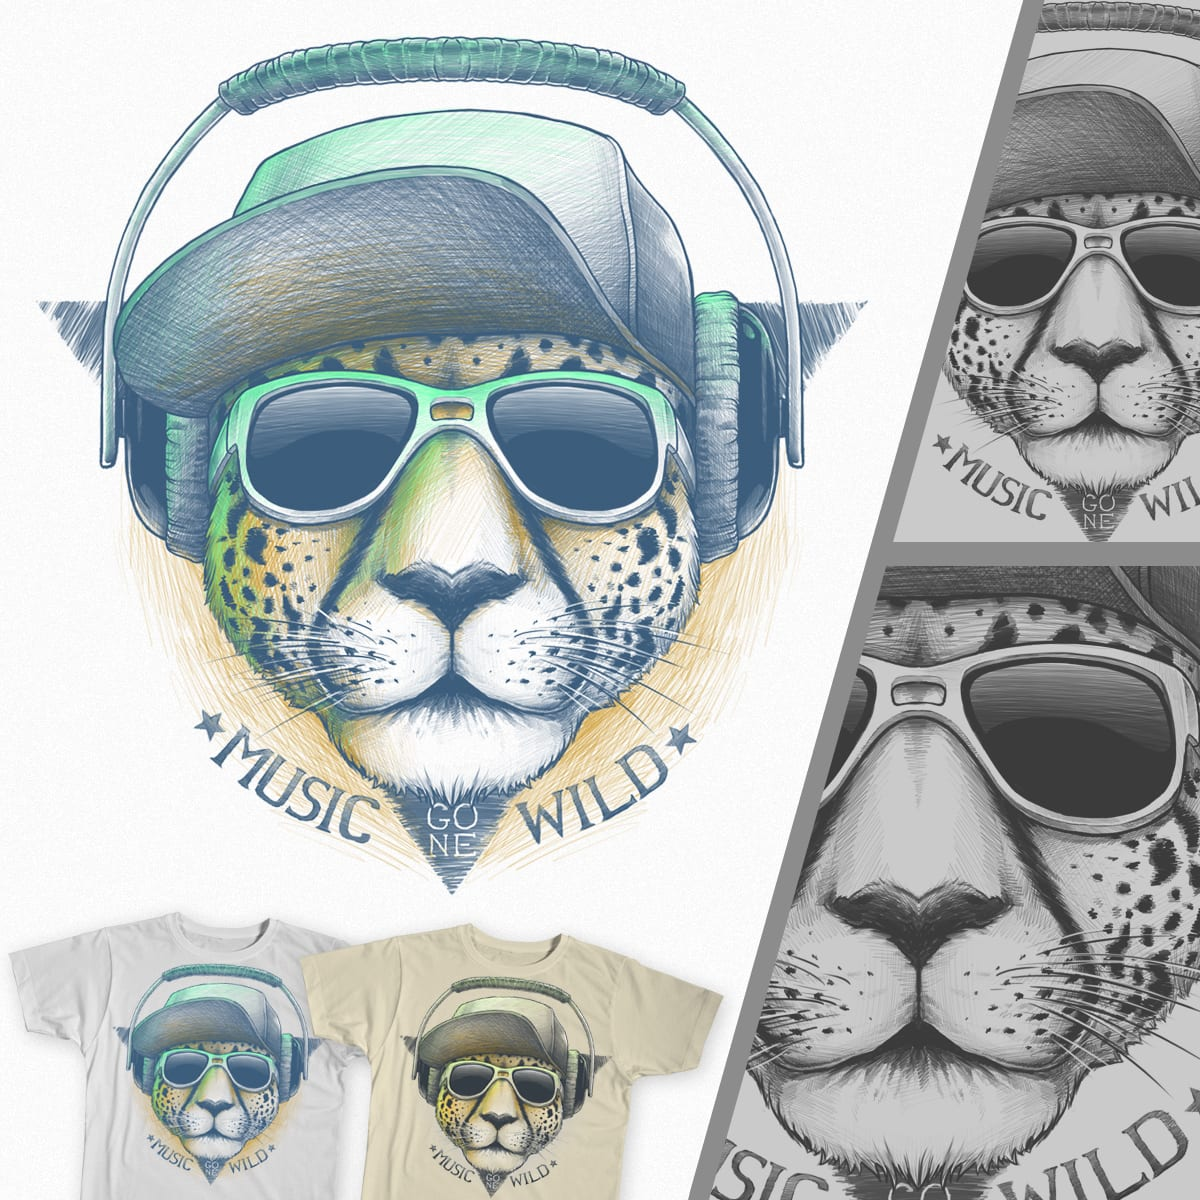 Music Gone Wild ! by BlackoutBrother on Threadless